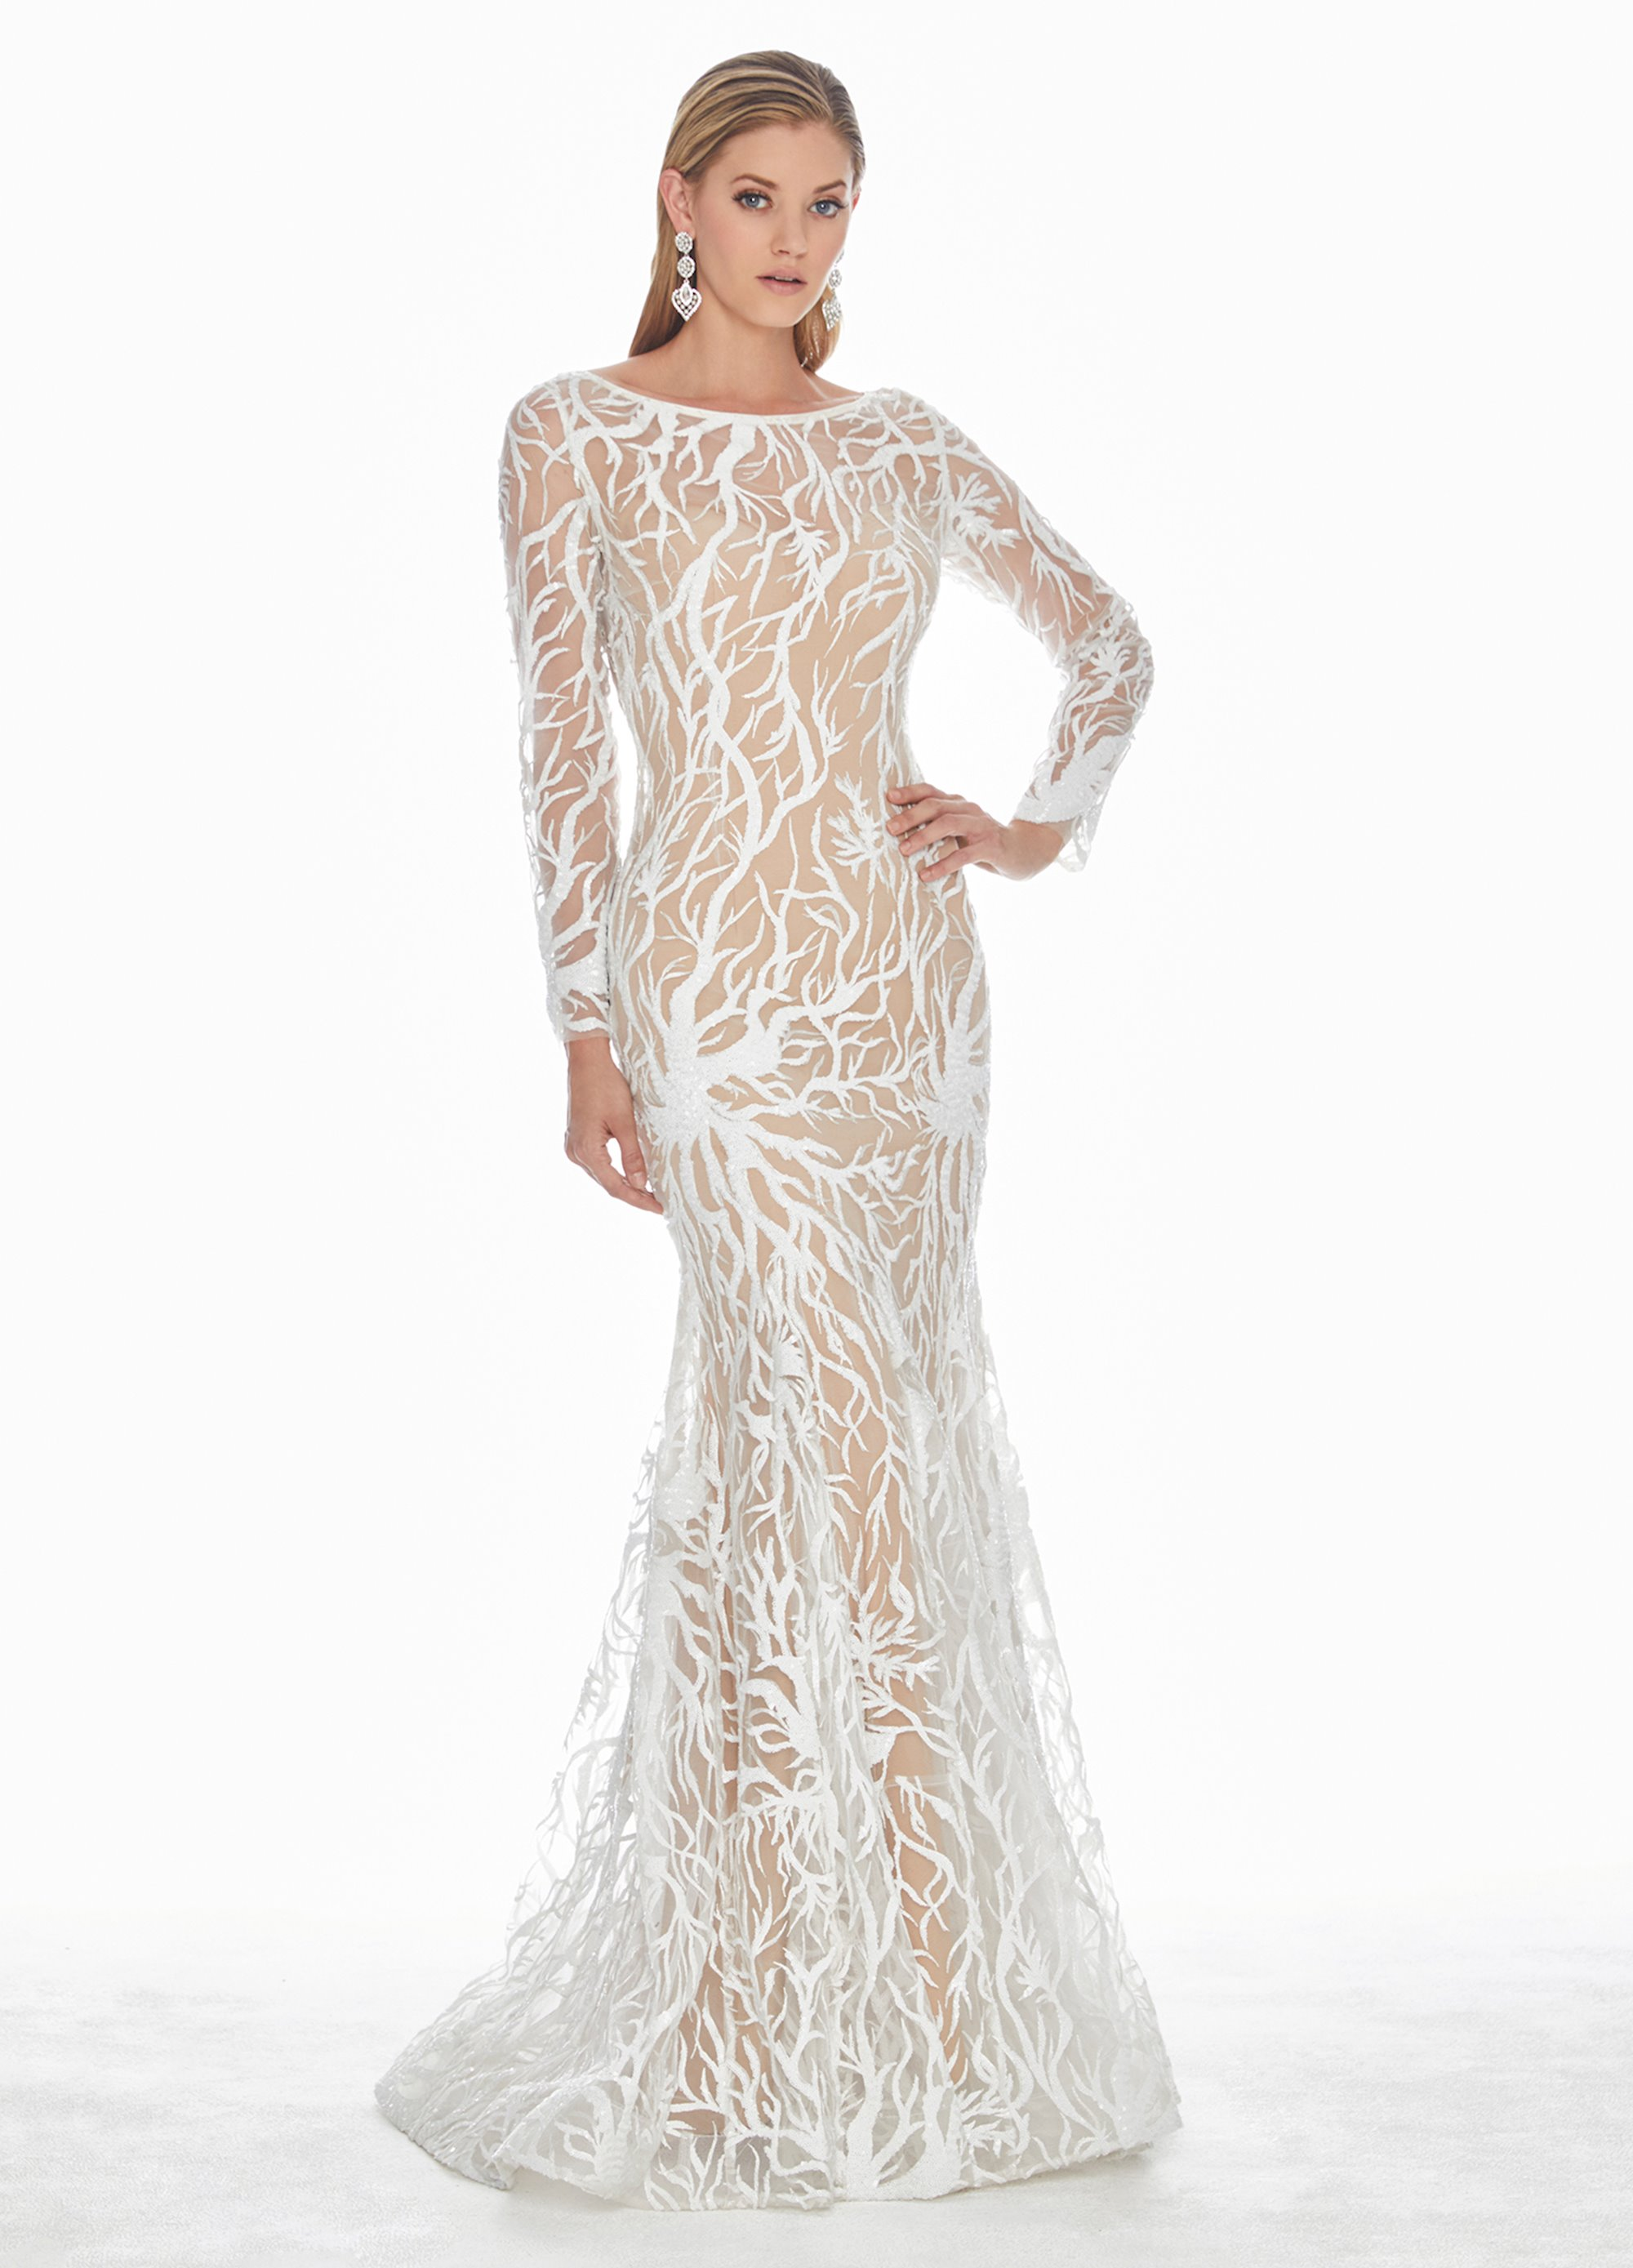 ea4d93de9df Ashley Lauren White Sequin Evening Dress. Double tap to zoom